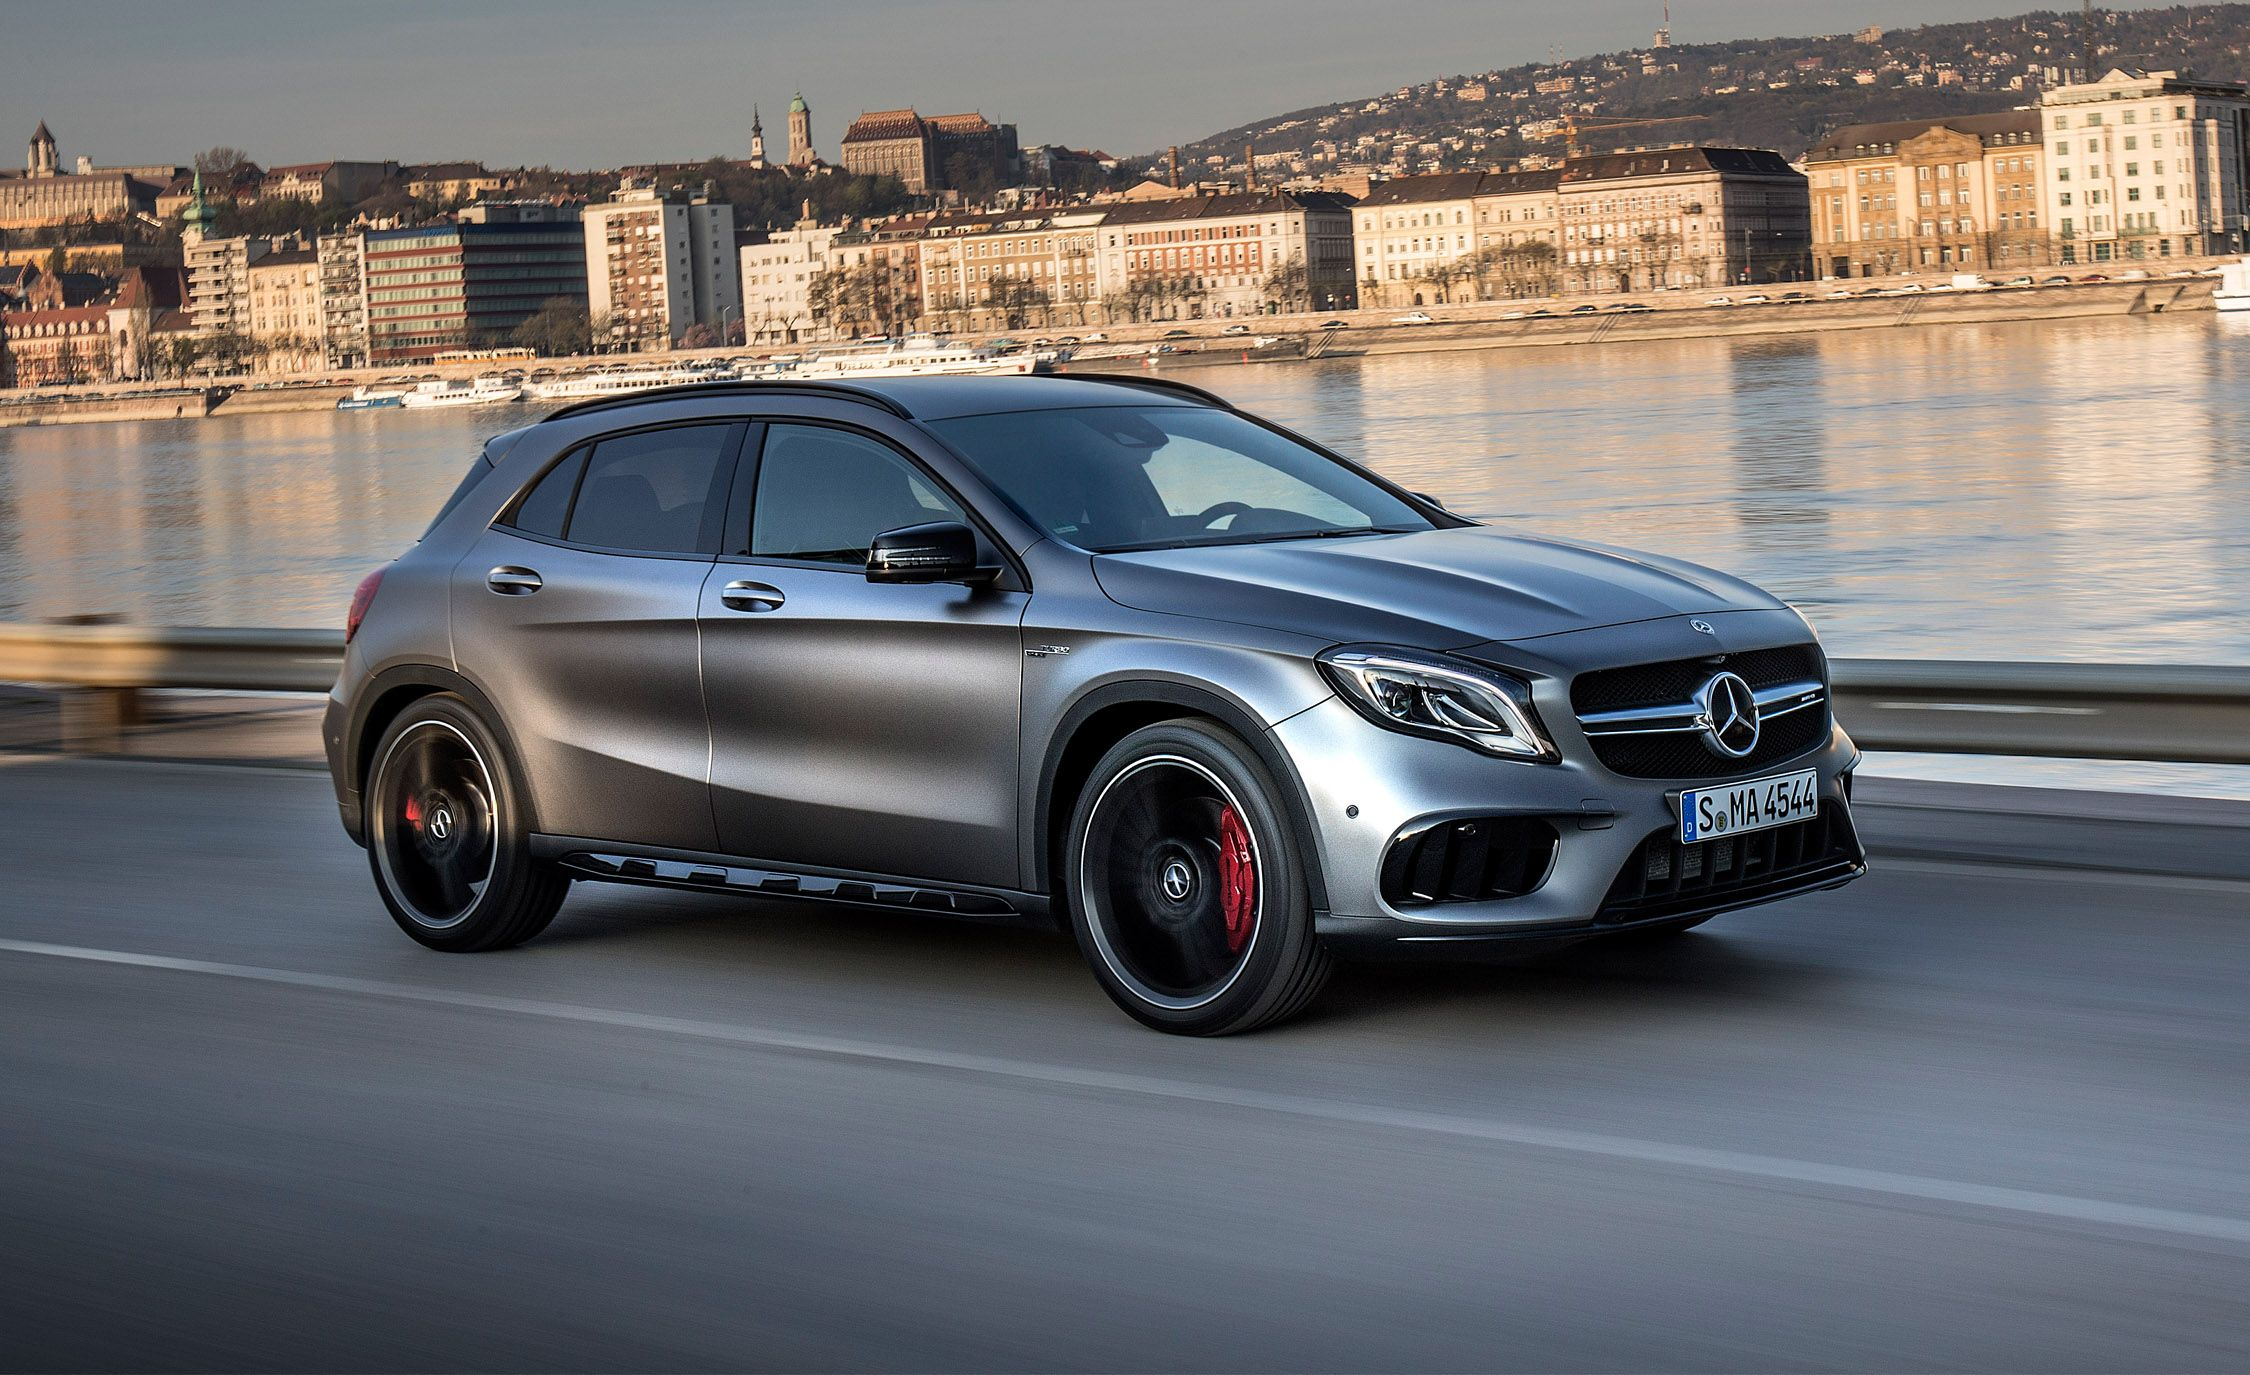 Dodge Latest Models >> 2017 Mercedes-AMG CLA45 and 2018 GLA45 First Drive | Review | Car and Driver